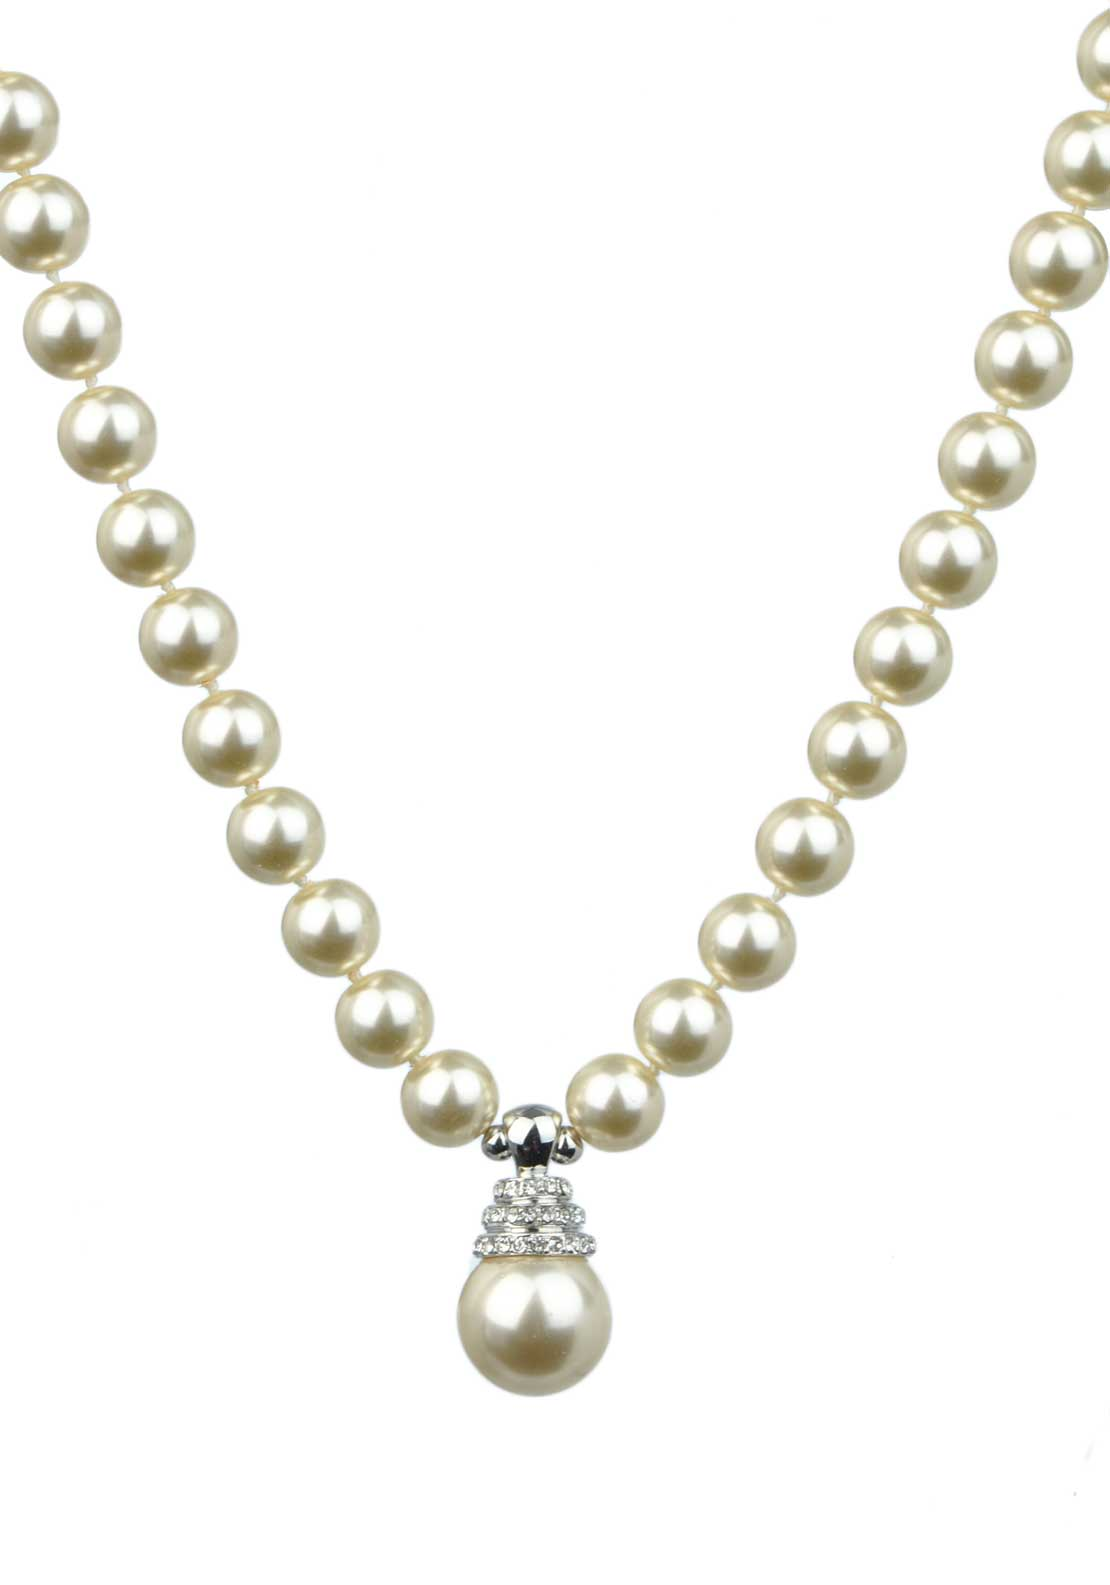 Absolute Jewellery Pearl Necklace with Crystal Set Pearl Drop, Pearl